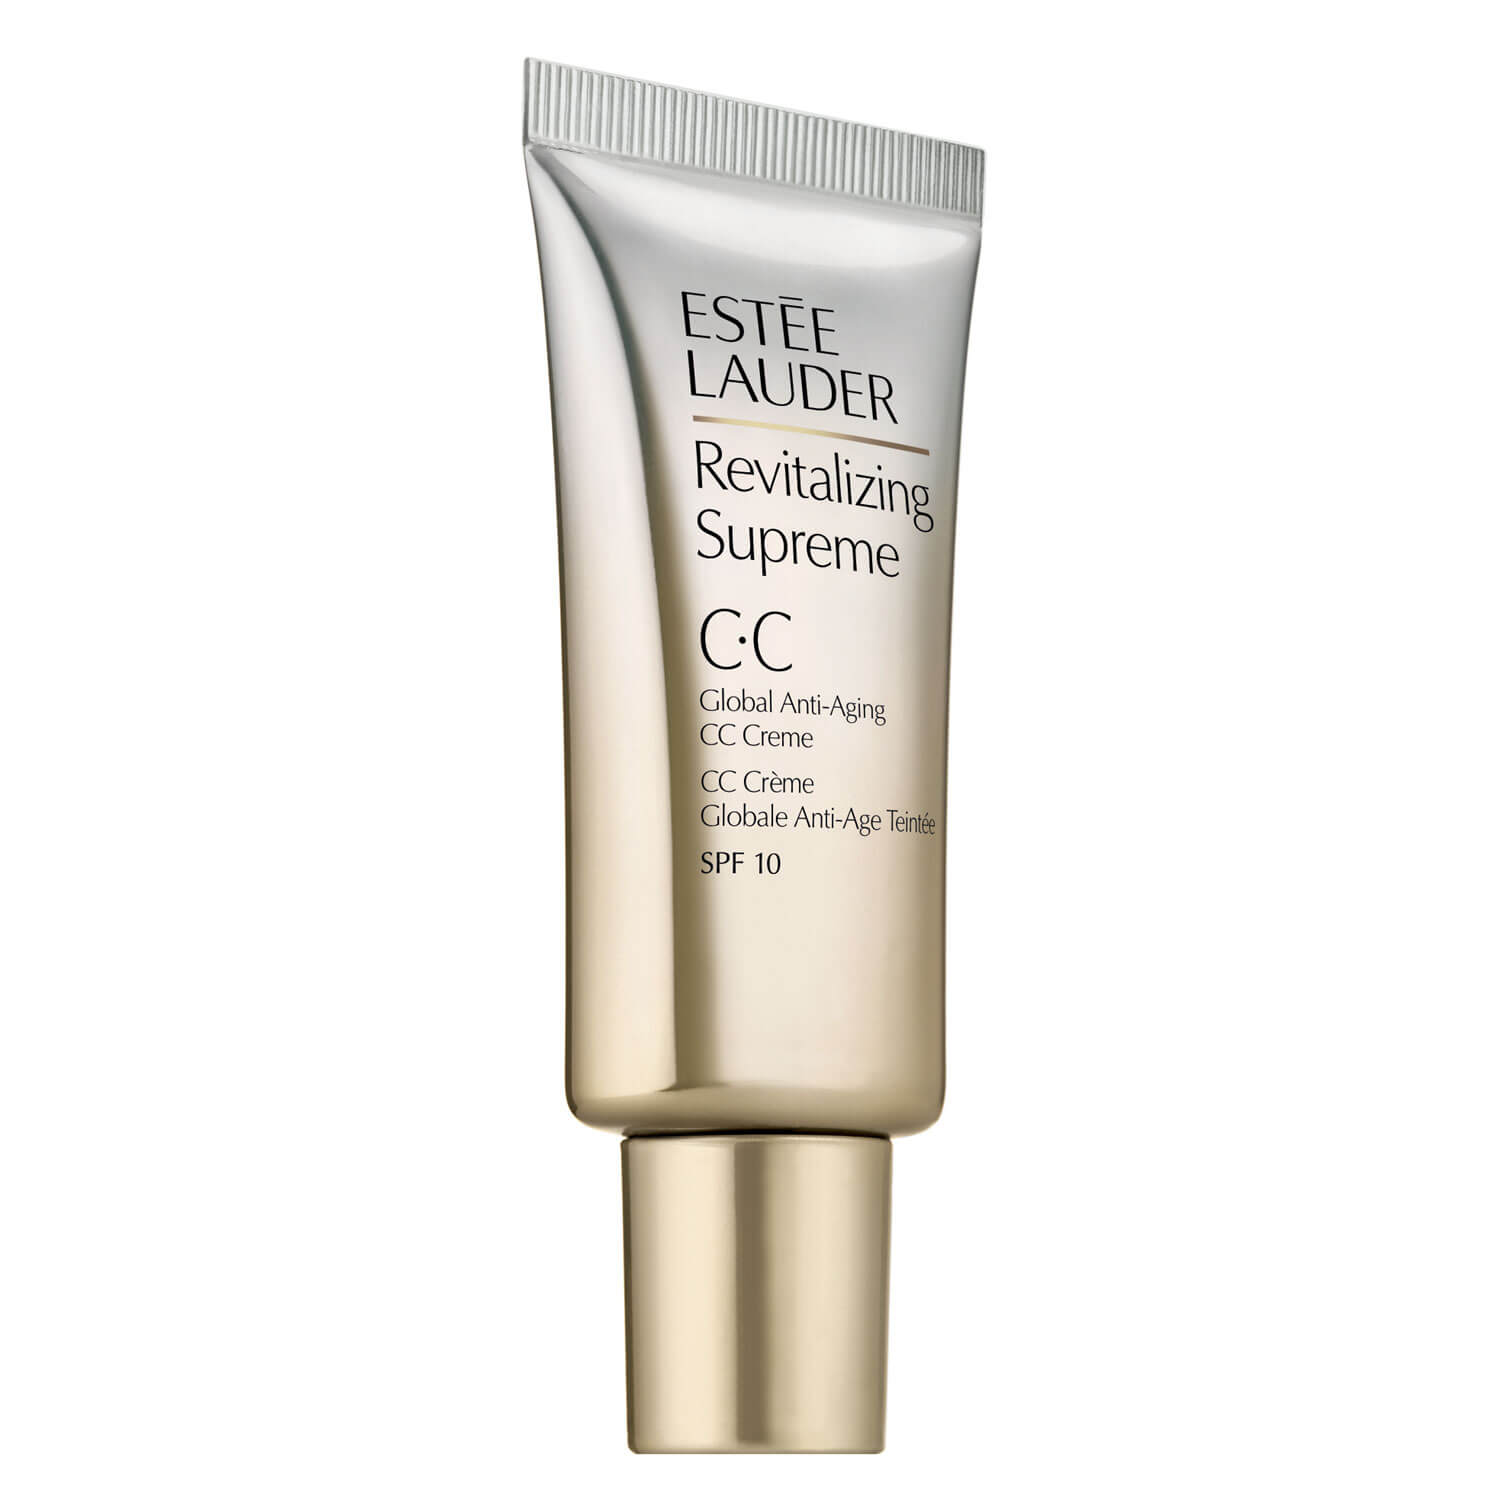 Revitalizing Supreme - Global Anti-Aging CC Creme SPF10